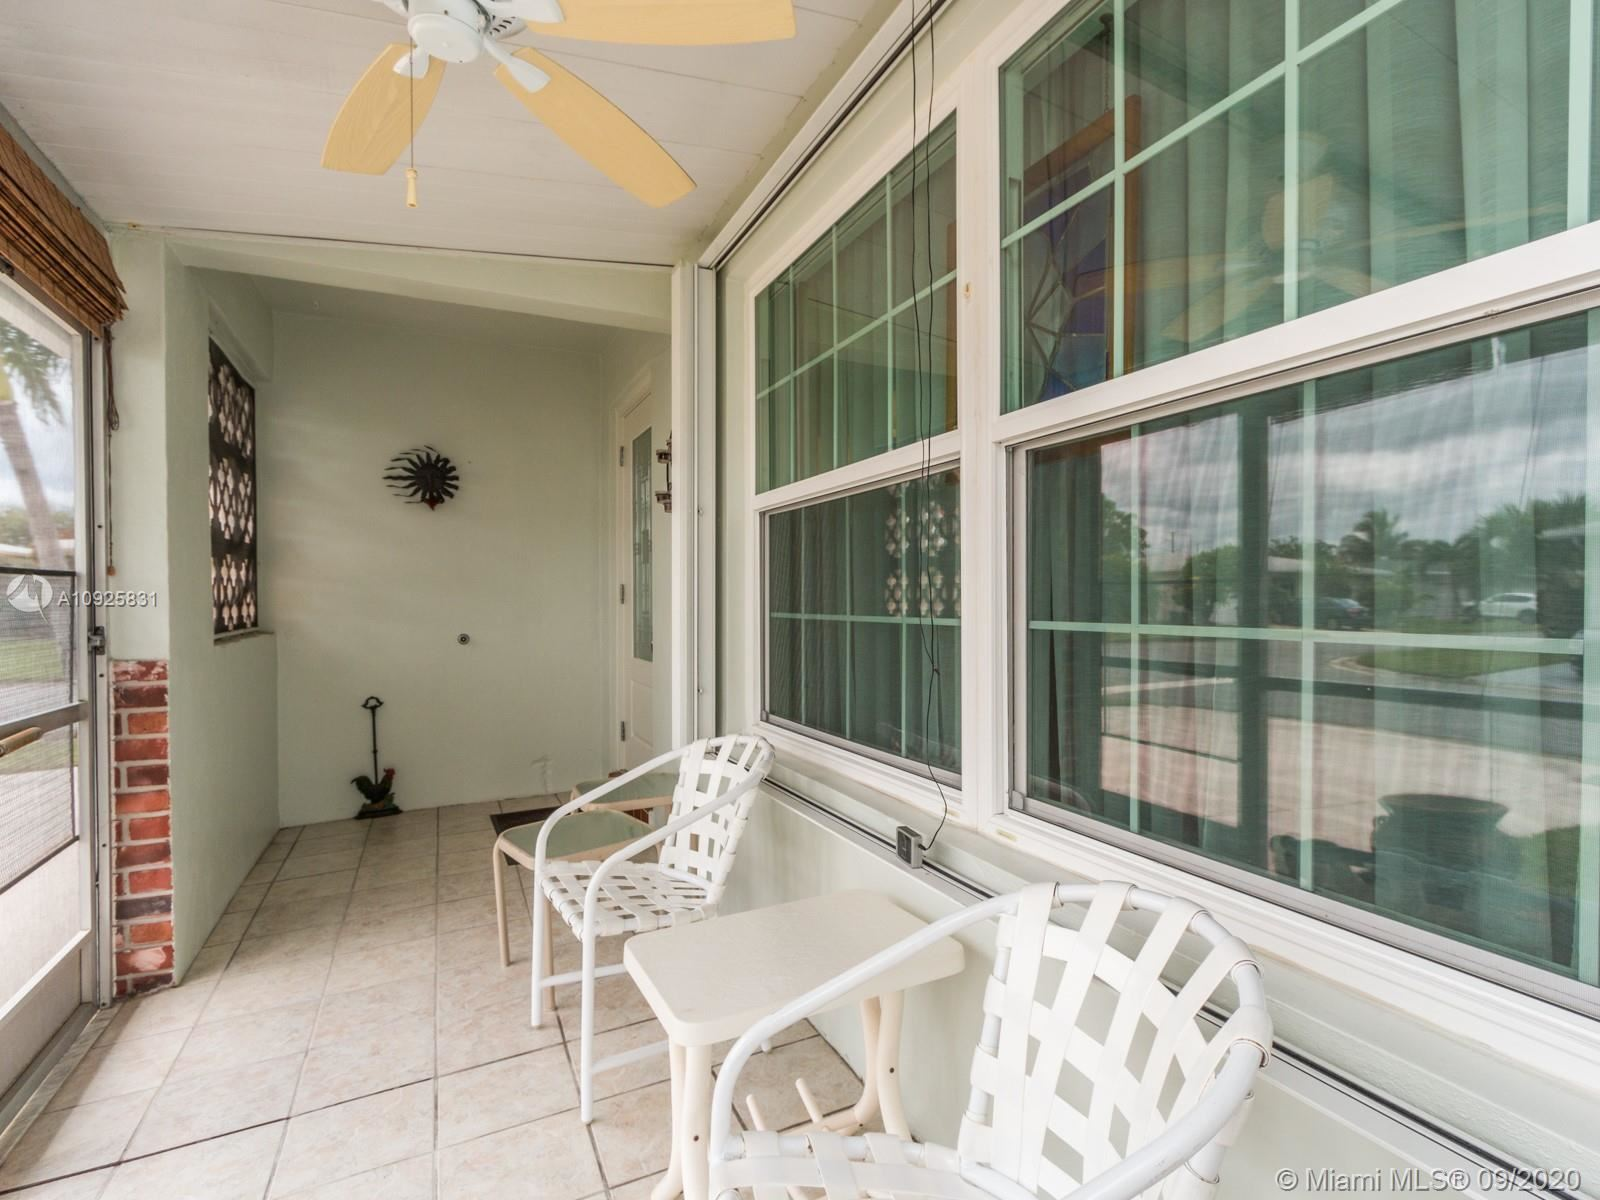 Photo of 6955 NW 14th Pl, Margate, FL 33063 (MLS # A10925831)